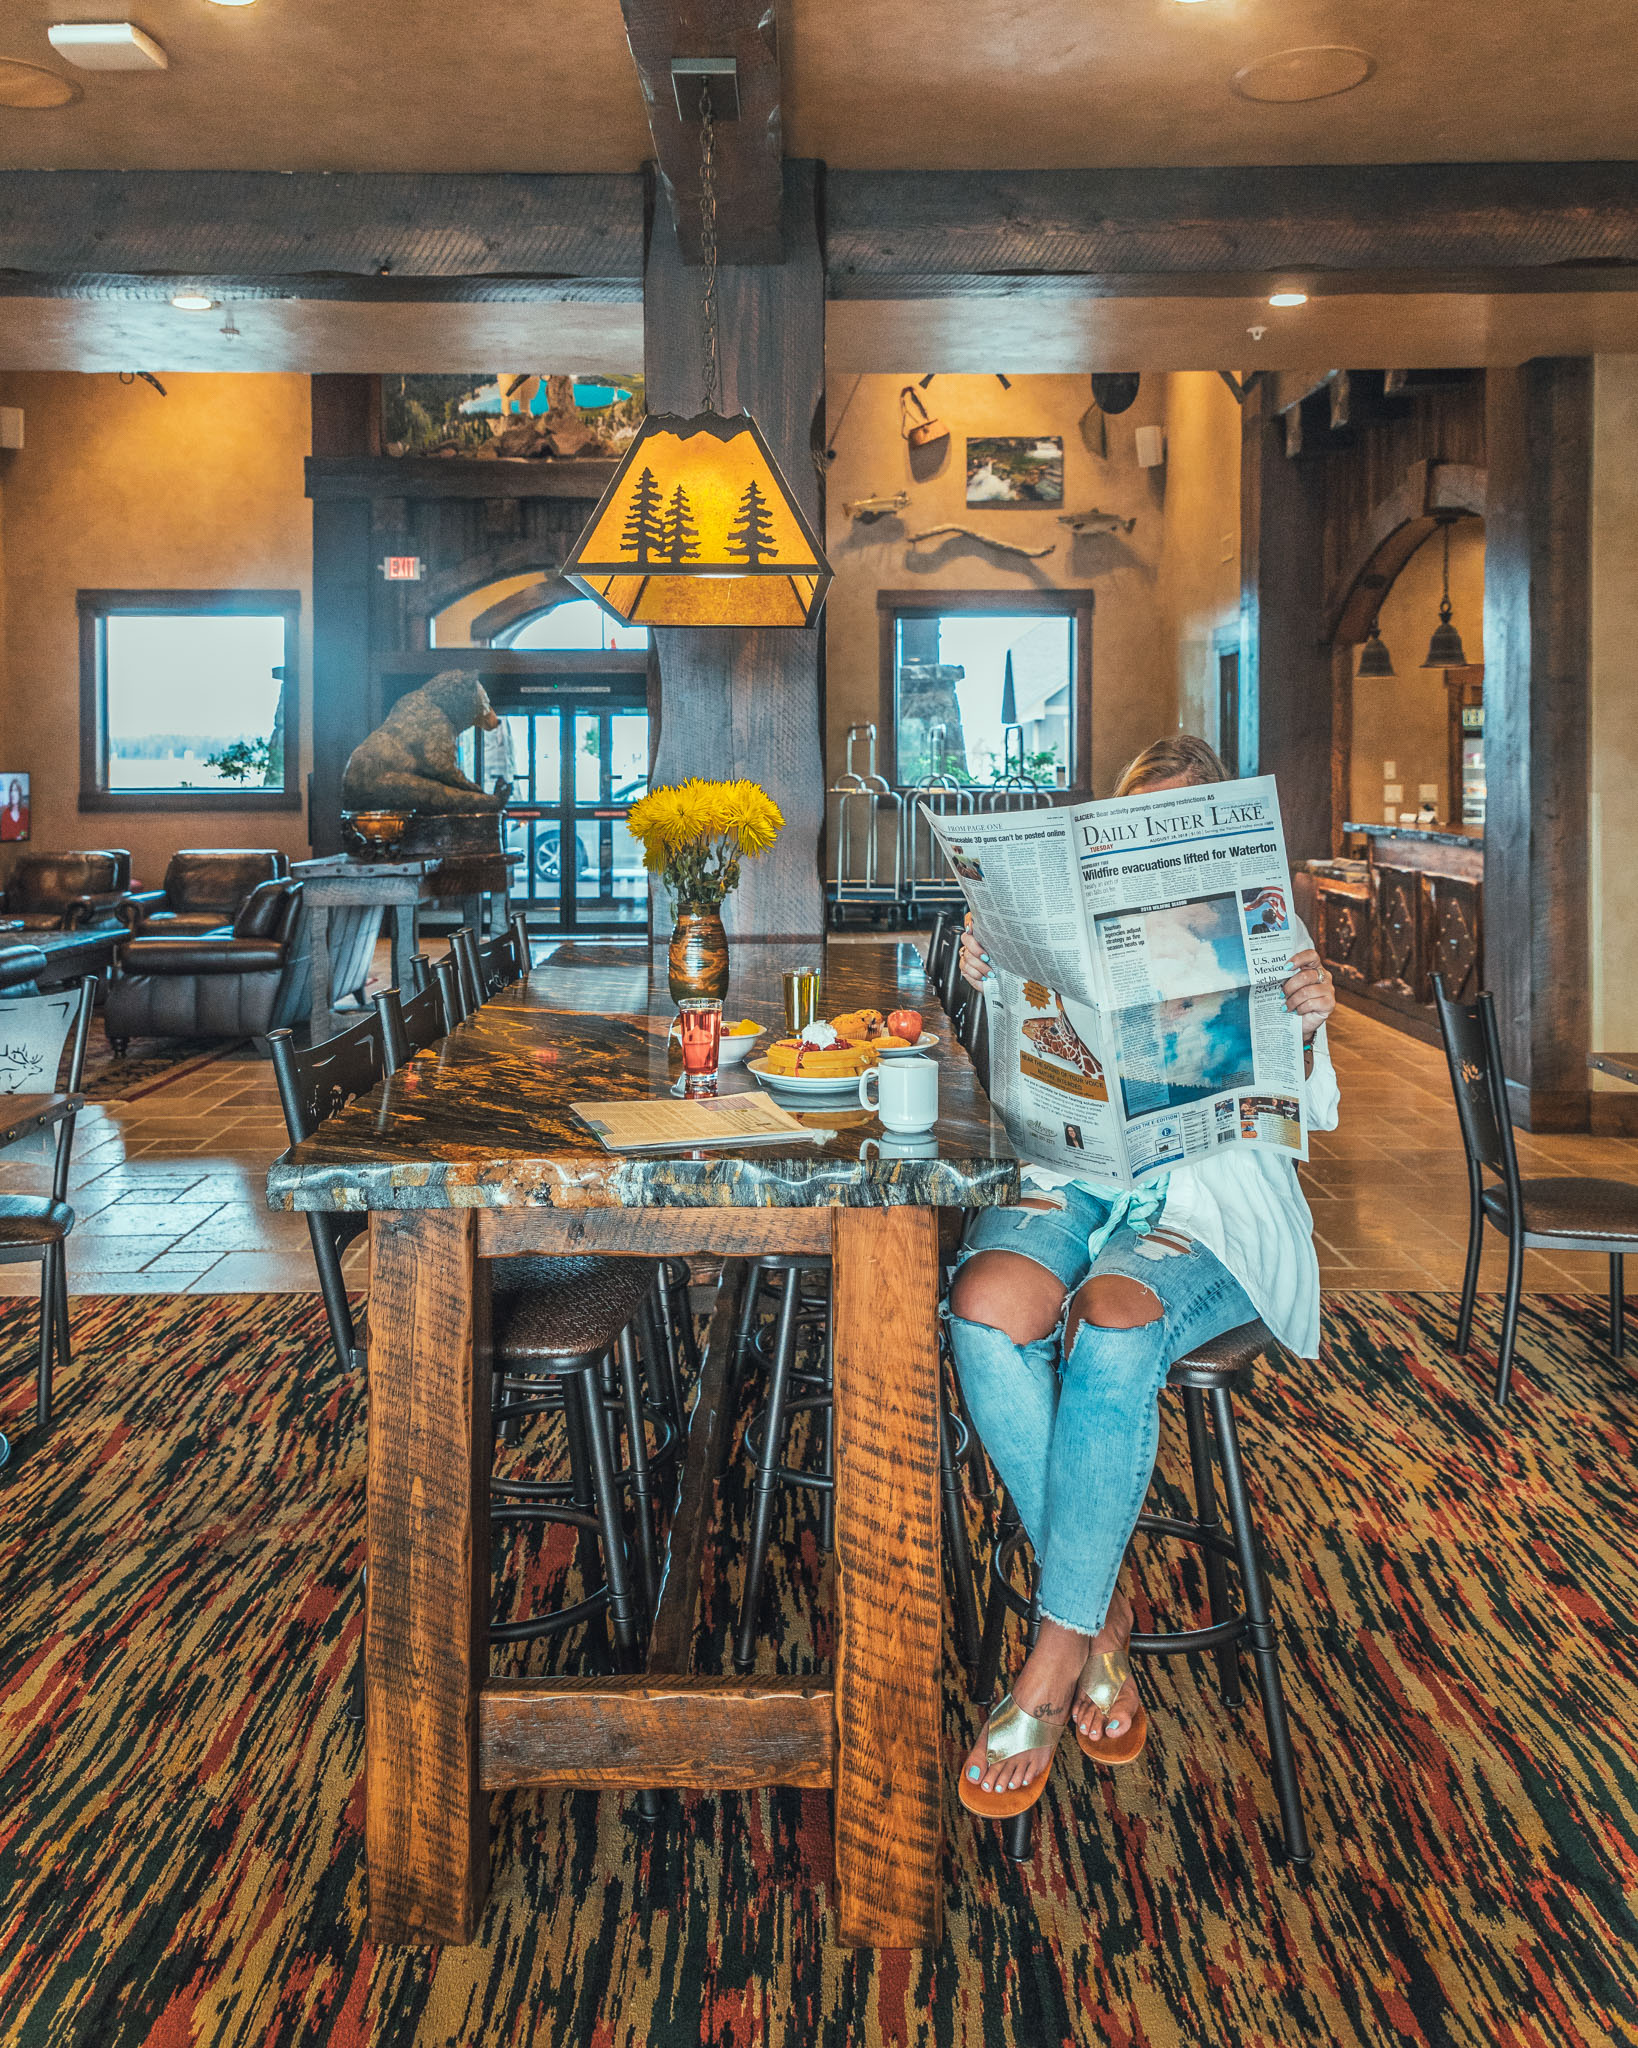 Breakfast included at the Country Inn and Suites by Radisson in Kalispell, Montana near Glacier National Park